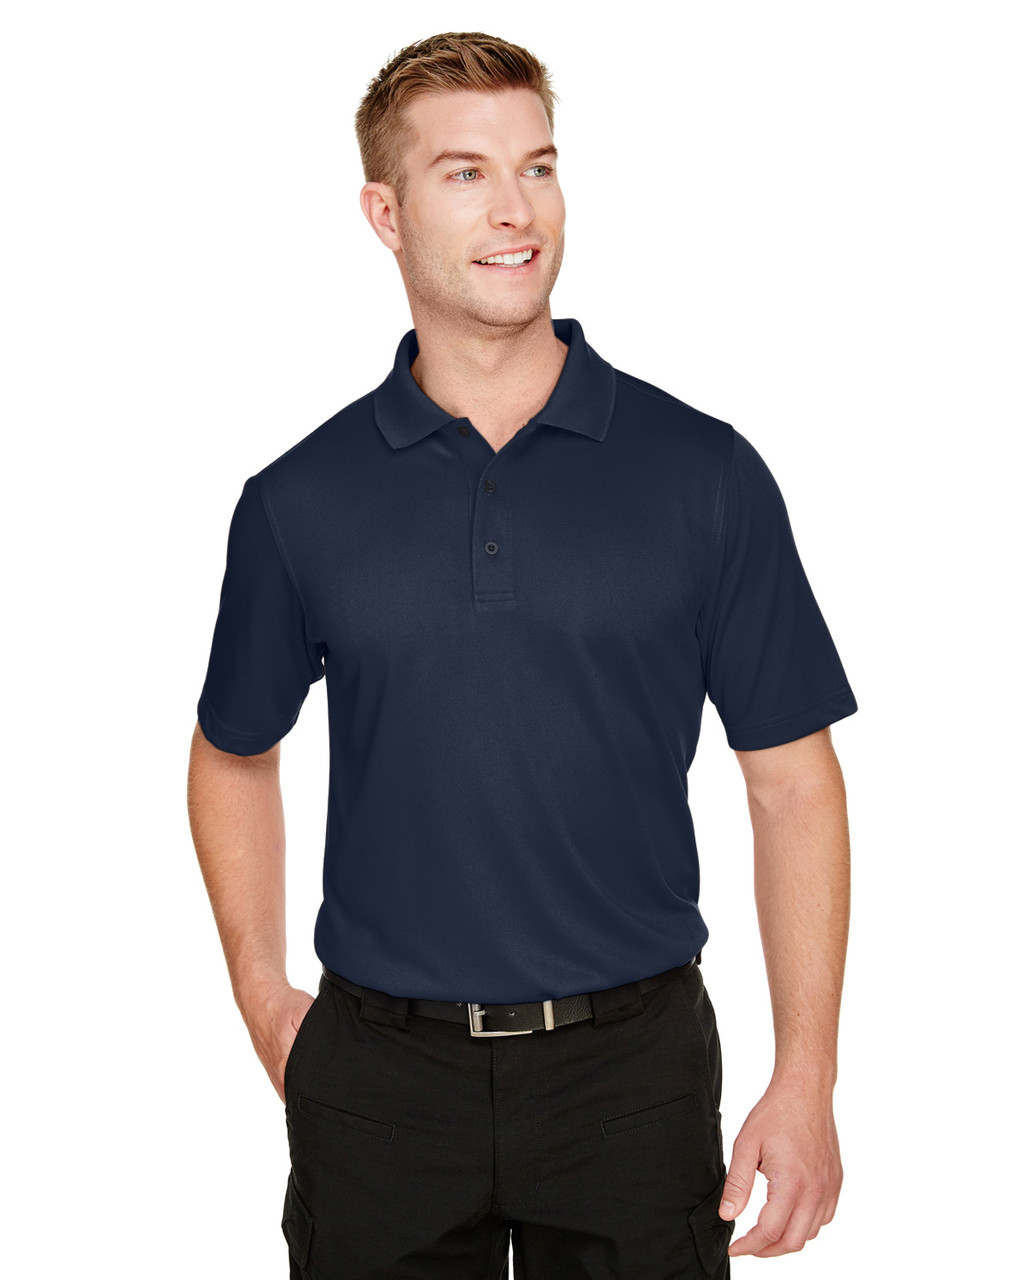 Dark Navy - M348 Harriton Men's Advantage Snag Protection Plus IL Polo Shirt | BlankClothing.ca